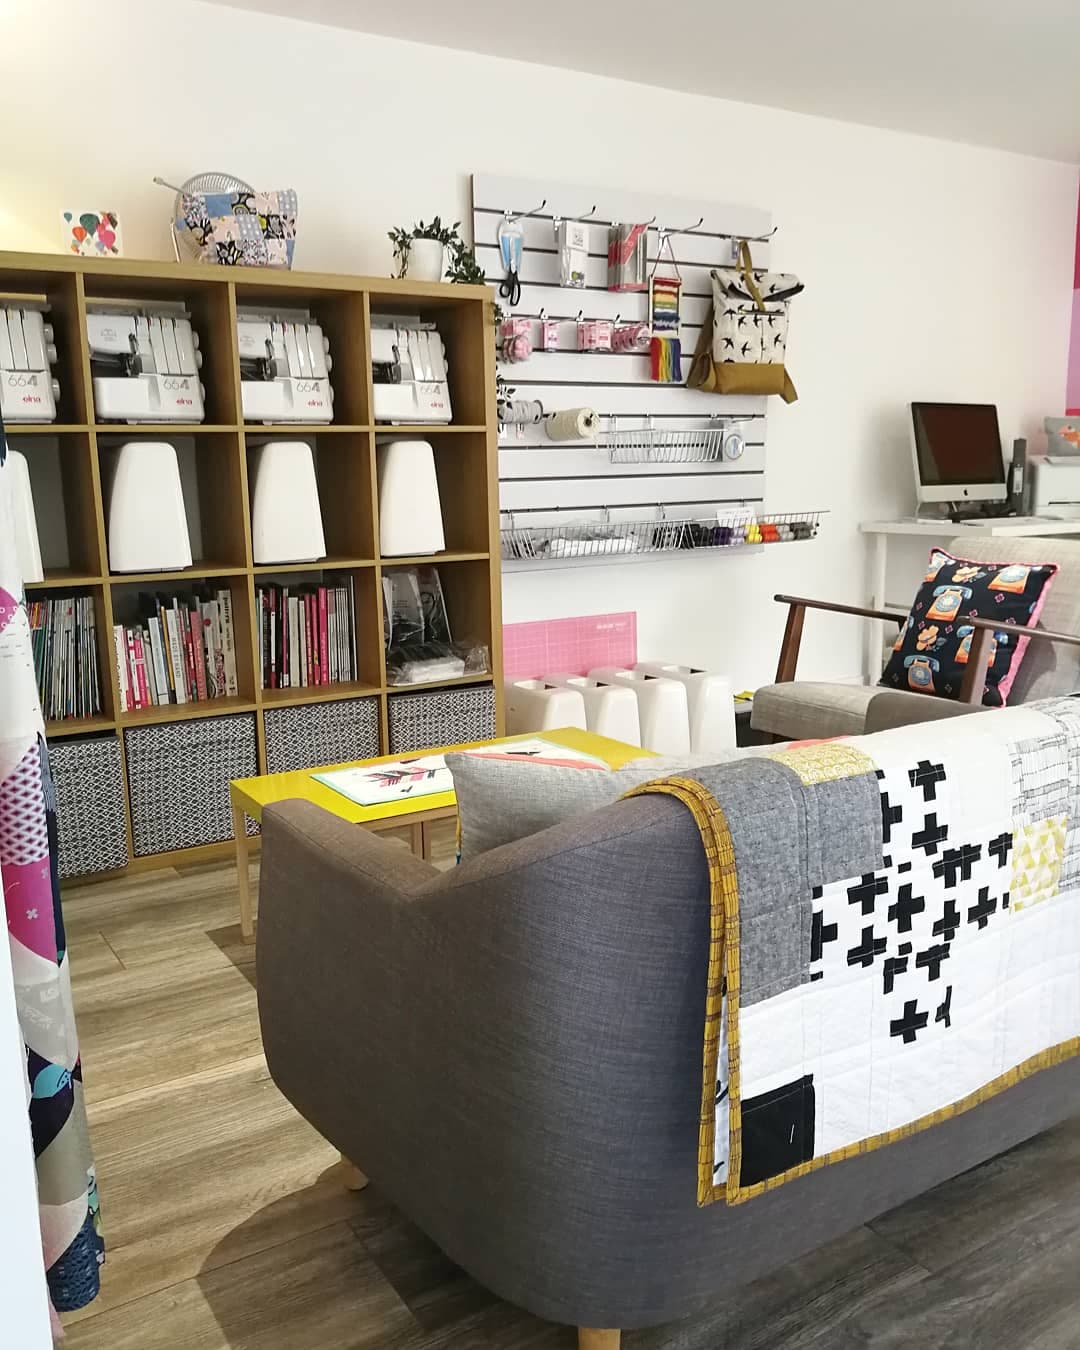 Sew Confident dundee franchise